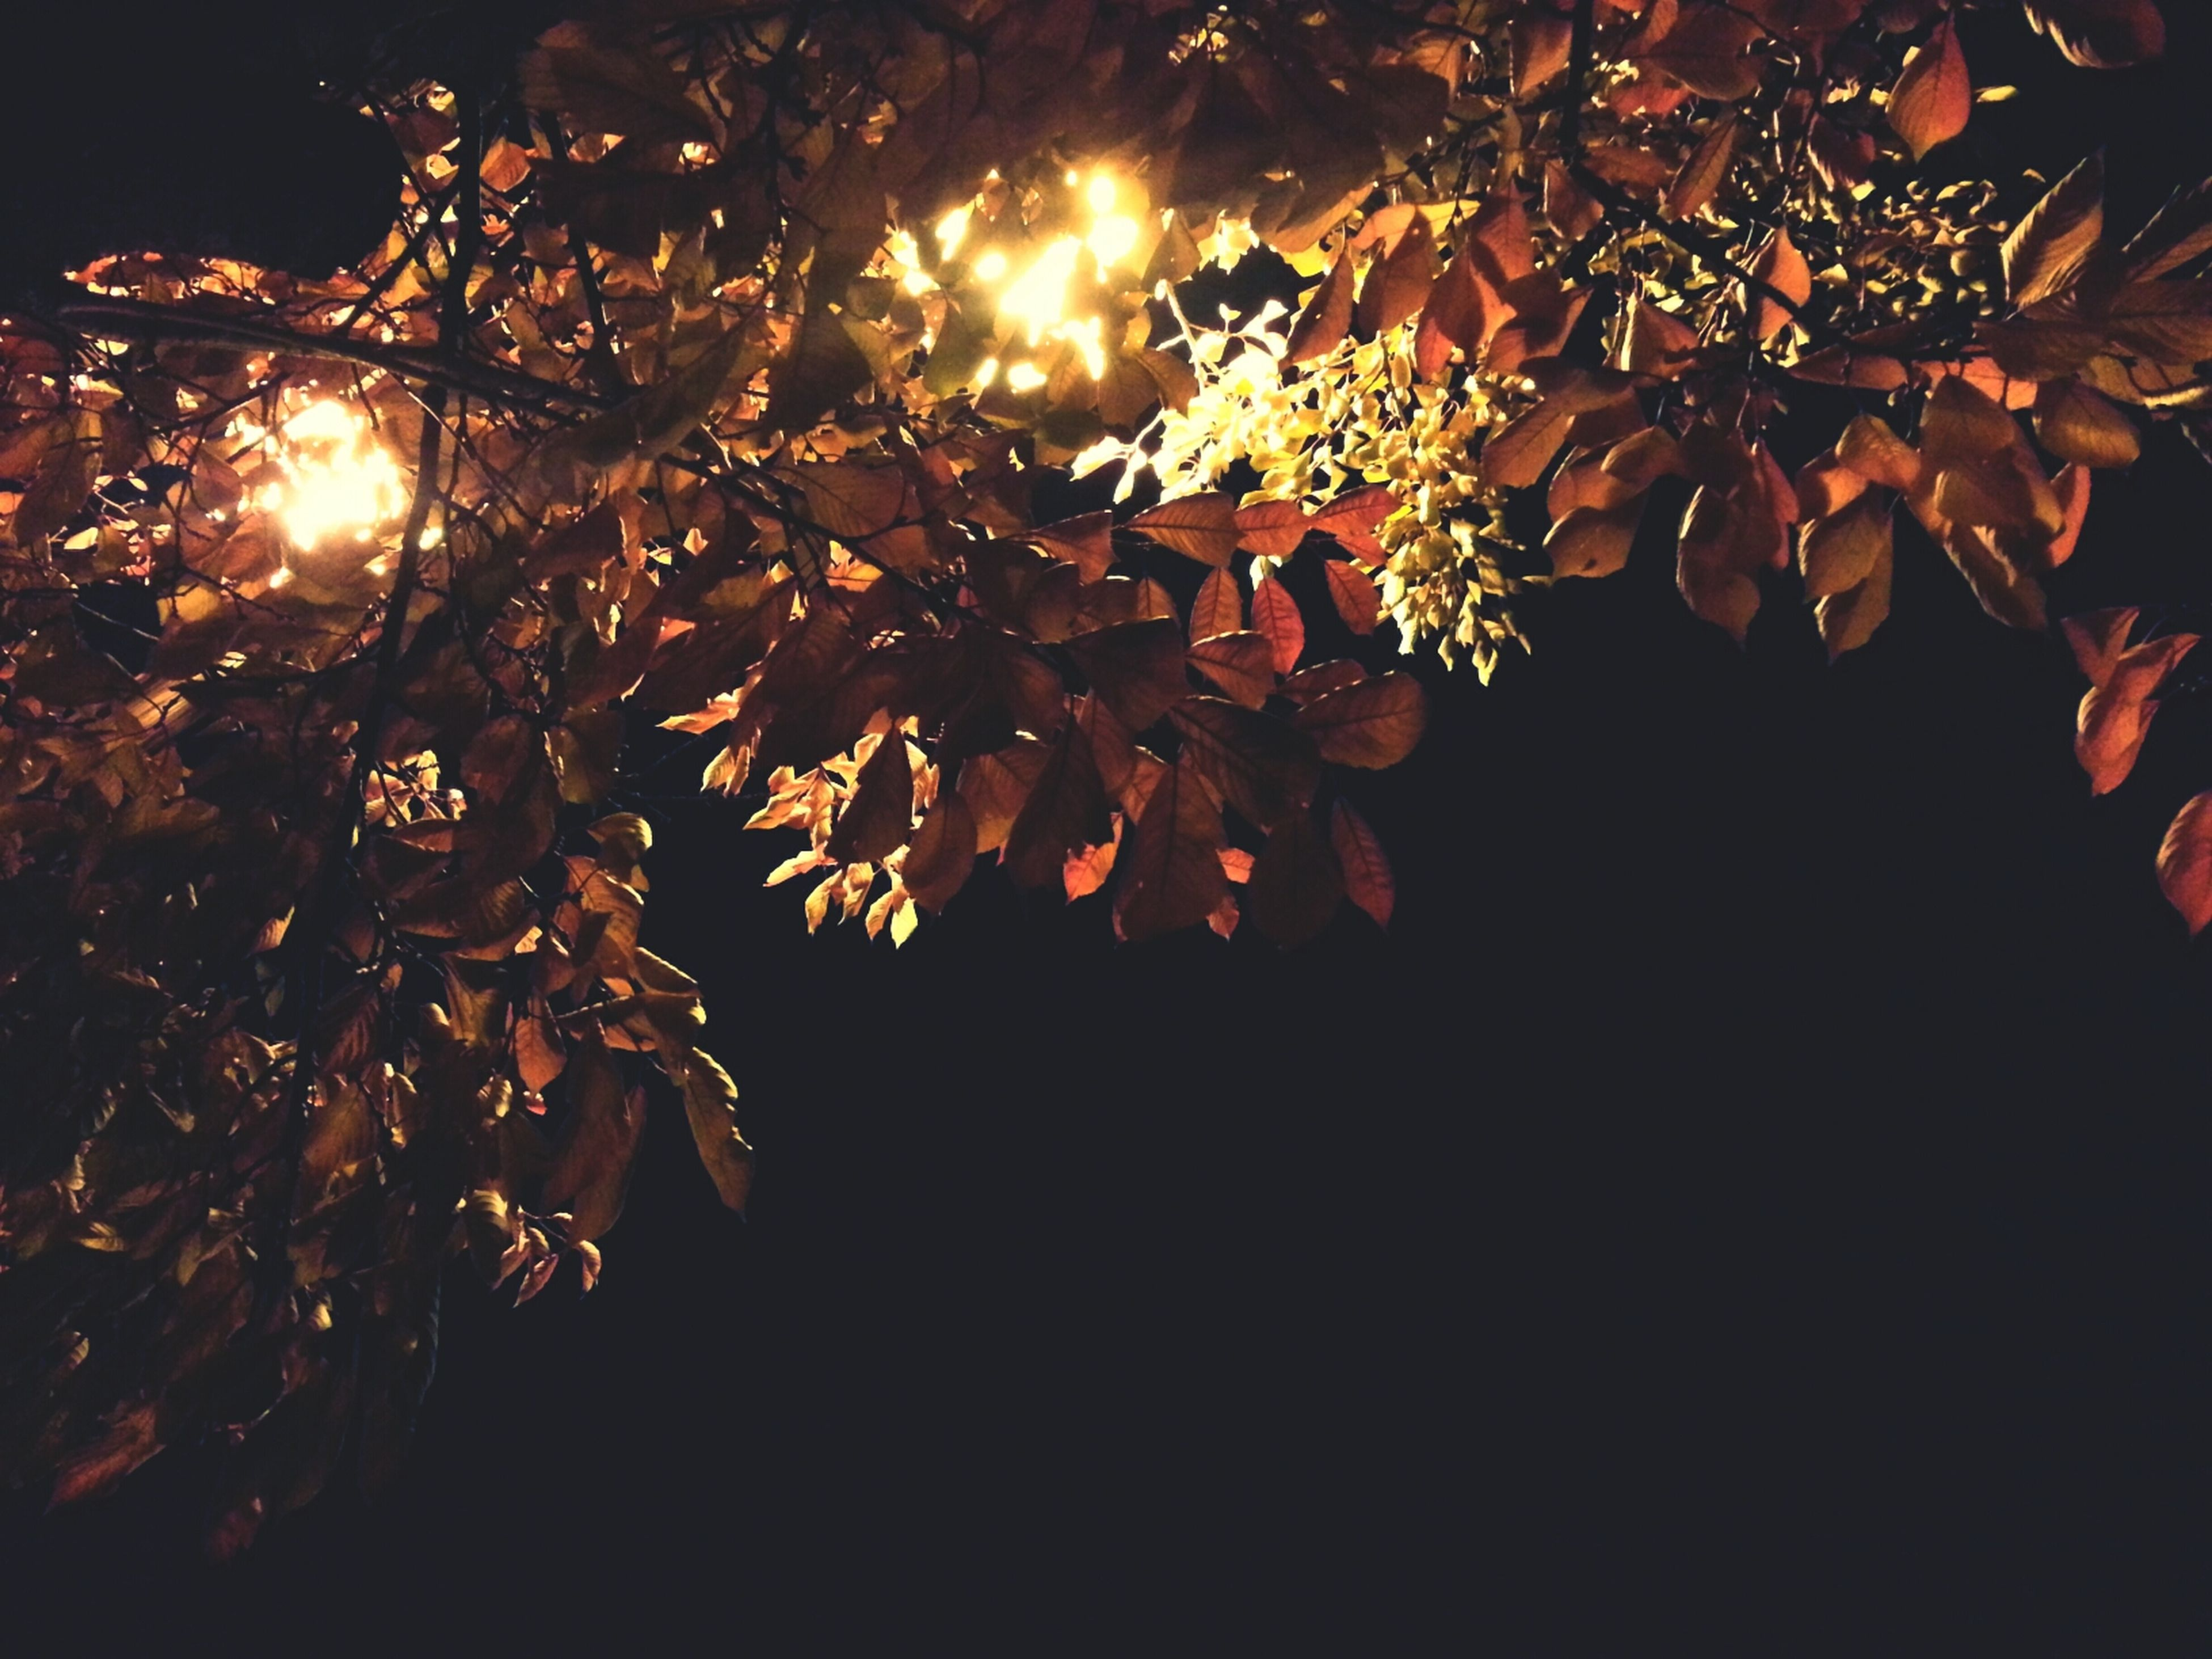 night, tree, growth, branch, nature, beauty in nature, low angle view, leaf, tranquility, illuminated, dark, no people, sun, sunlight, outdoors, plant, glowing, silhouette, close-up, clear sky